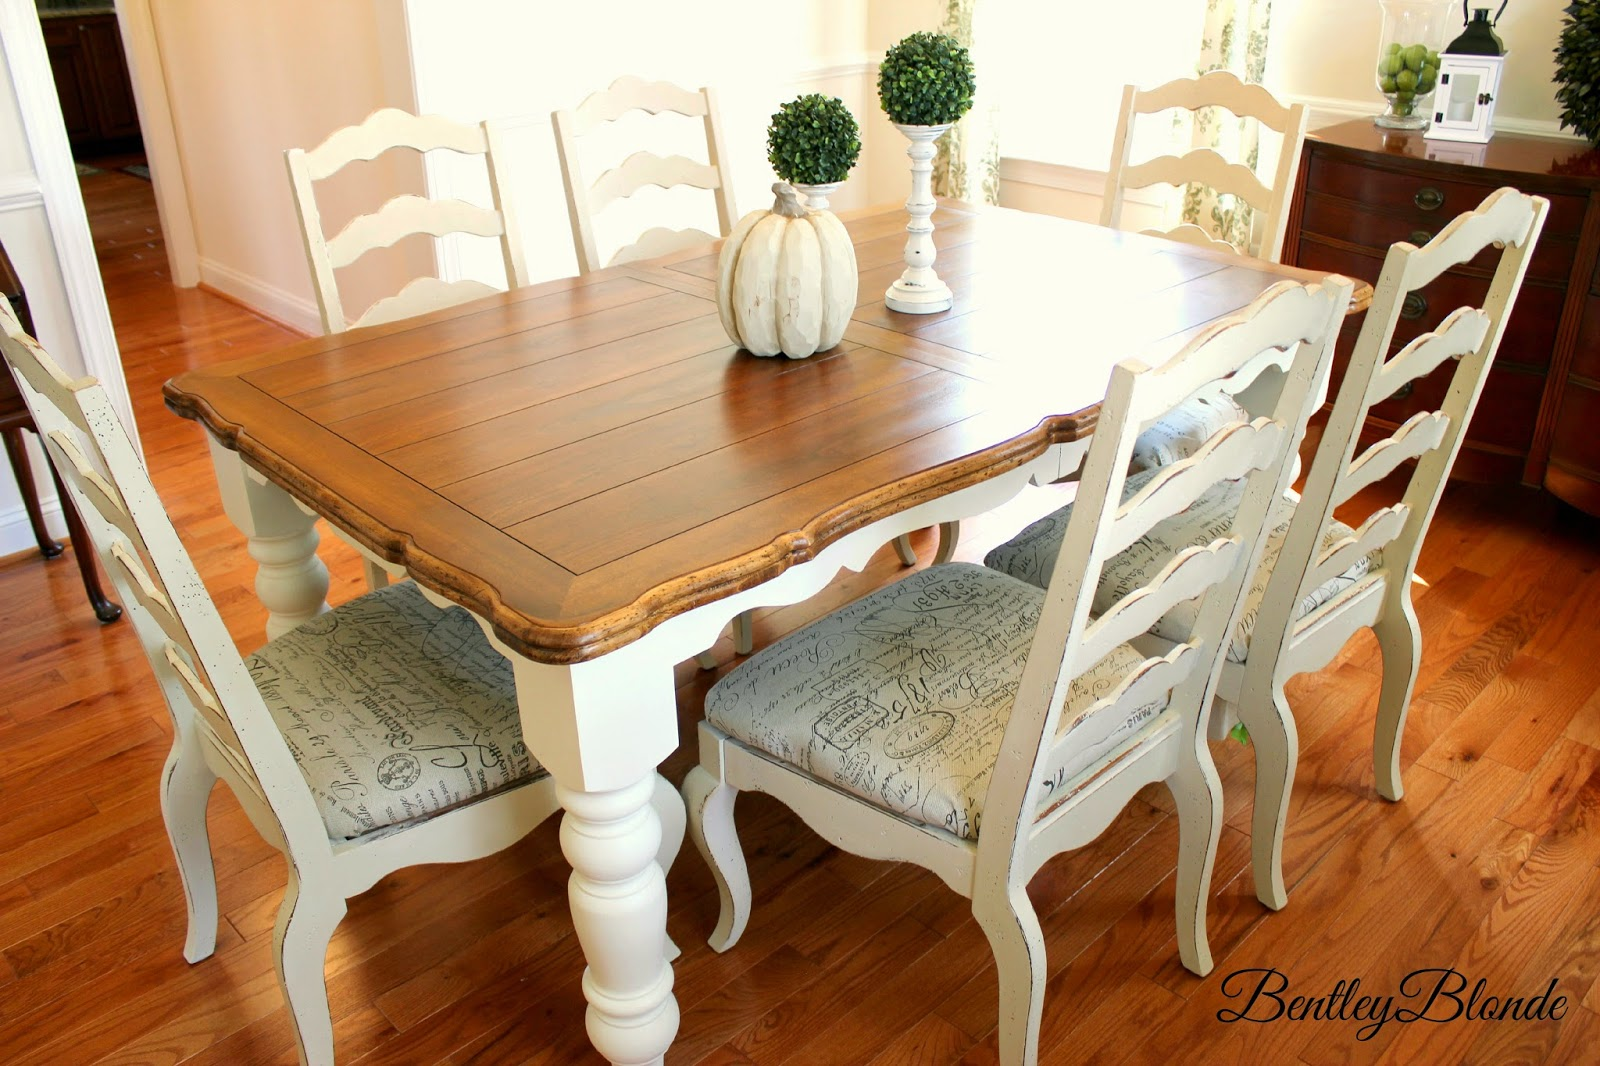 bentleyblonde diy farmhouse table dining set makeover with annie sloan chalk paint - Painting Dining Room